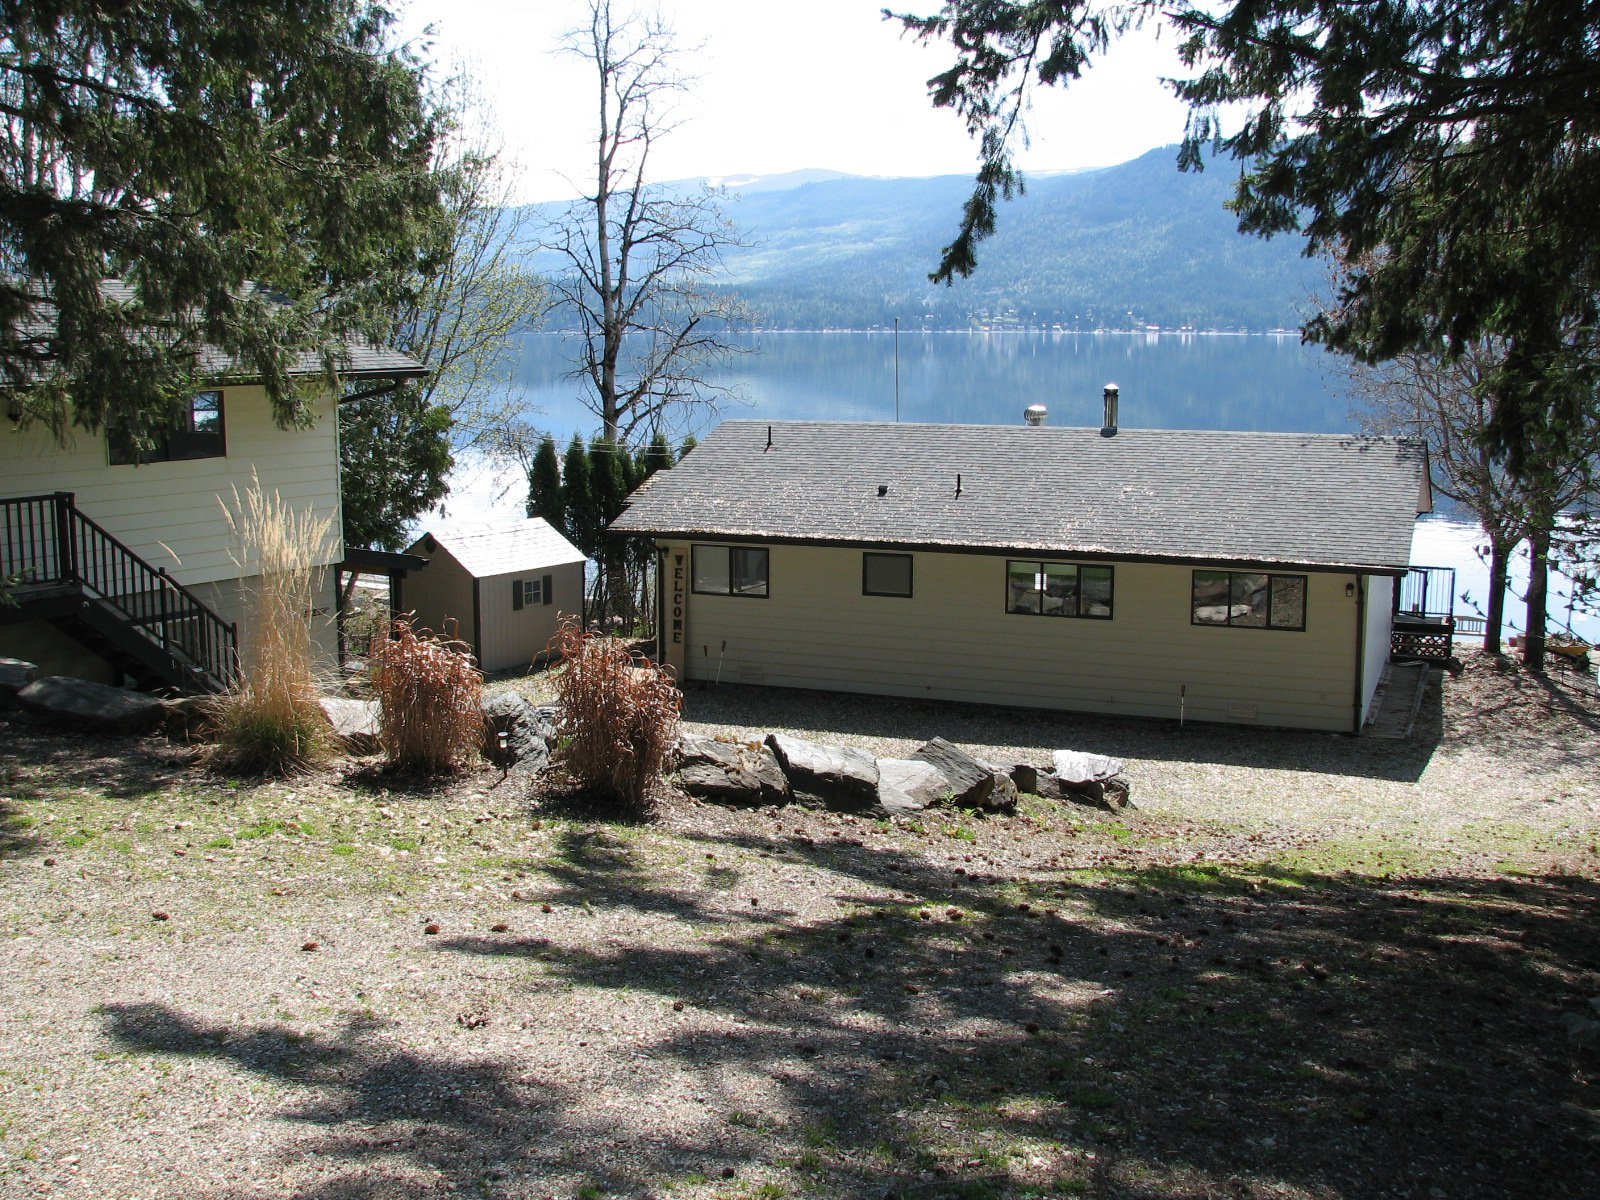 Main Photo: 6366 Squilax Anglemont Hwy in Magna Bay: North Shuswap House for sale (Shuswap)  : MLS®# 10181400